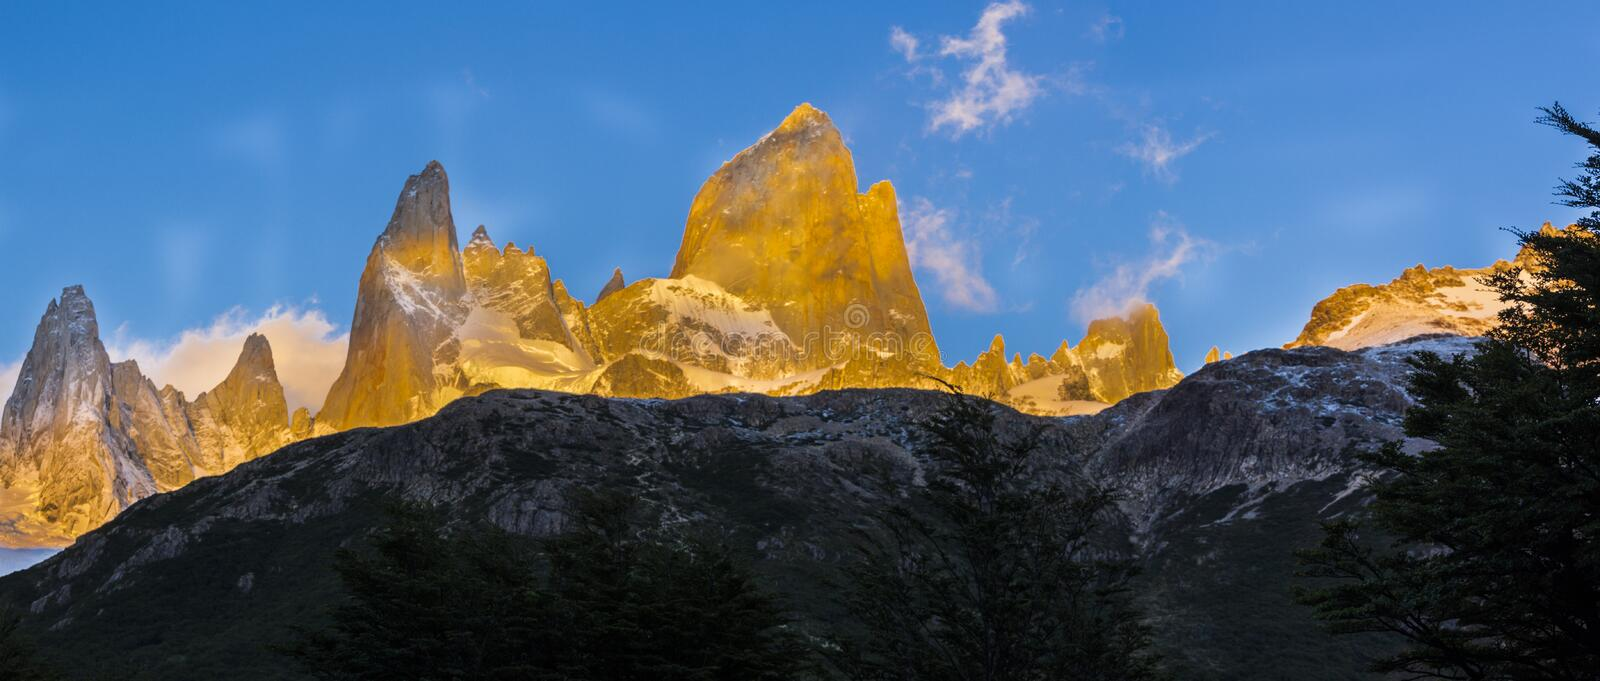 Fitz Roy amazing views inside the Argentina Patagonia with an awesome sunrise filling the rock towers with an increcible orange co stock photos